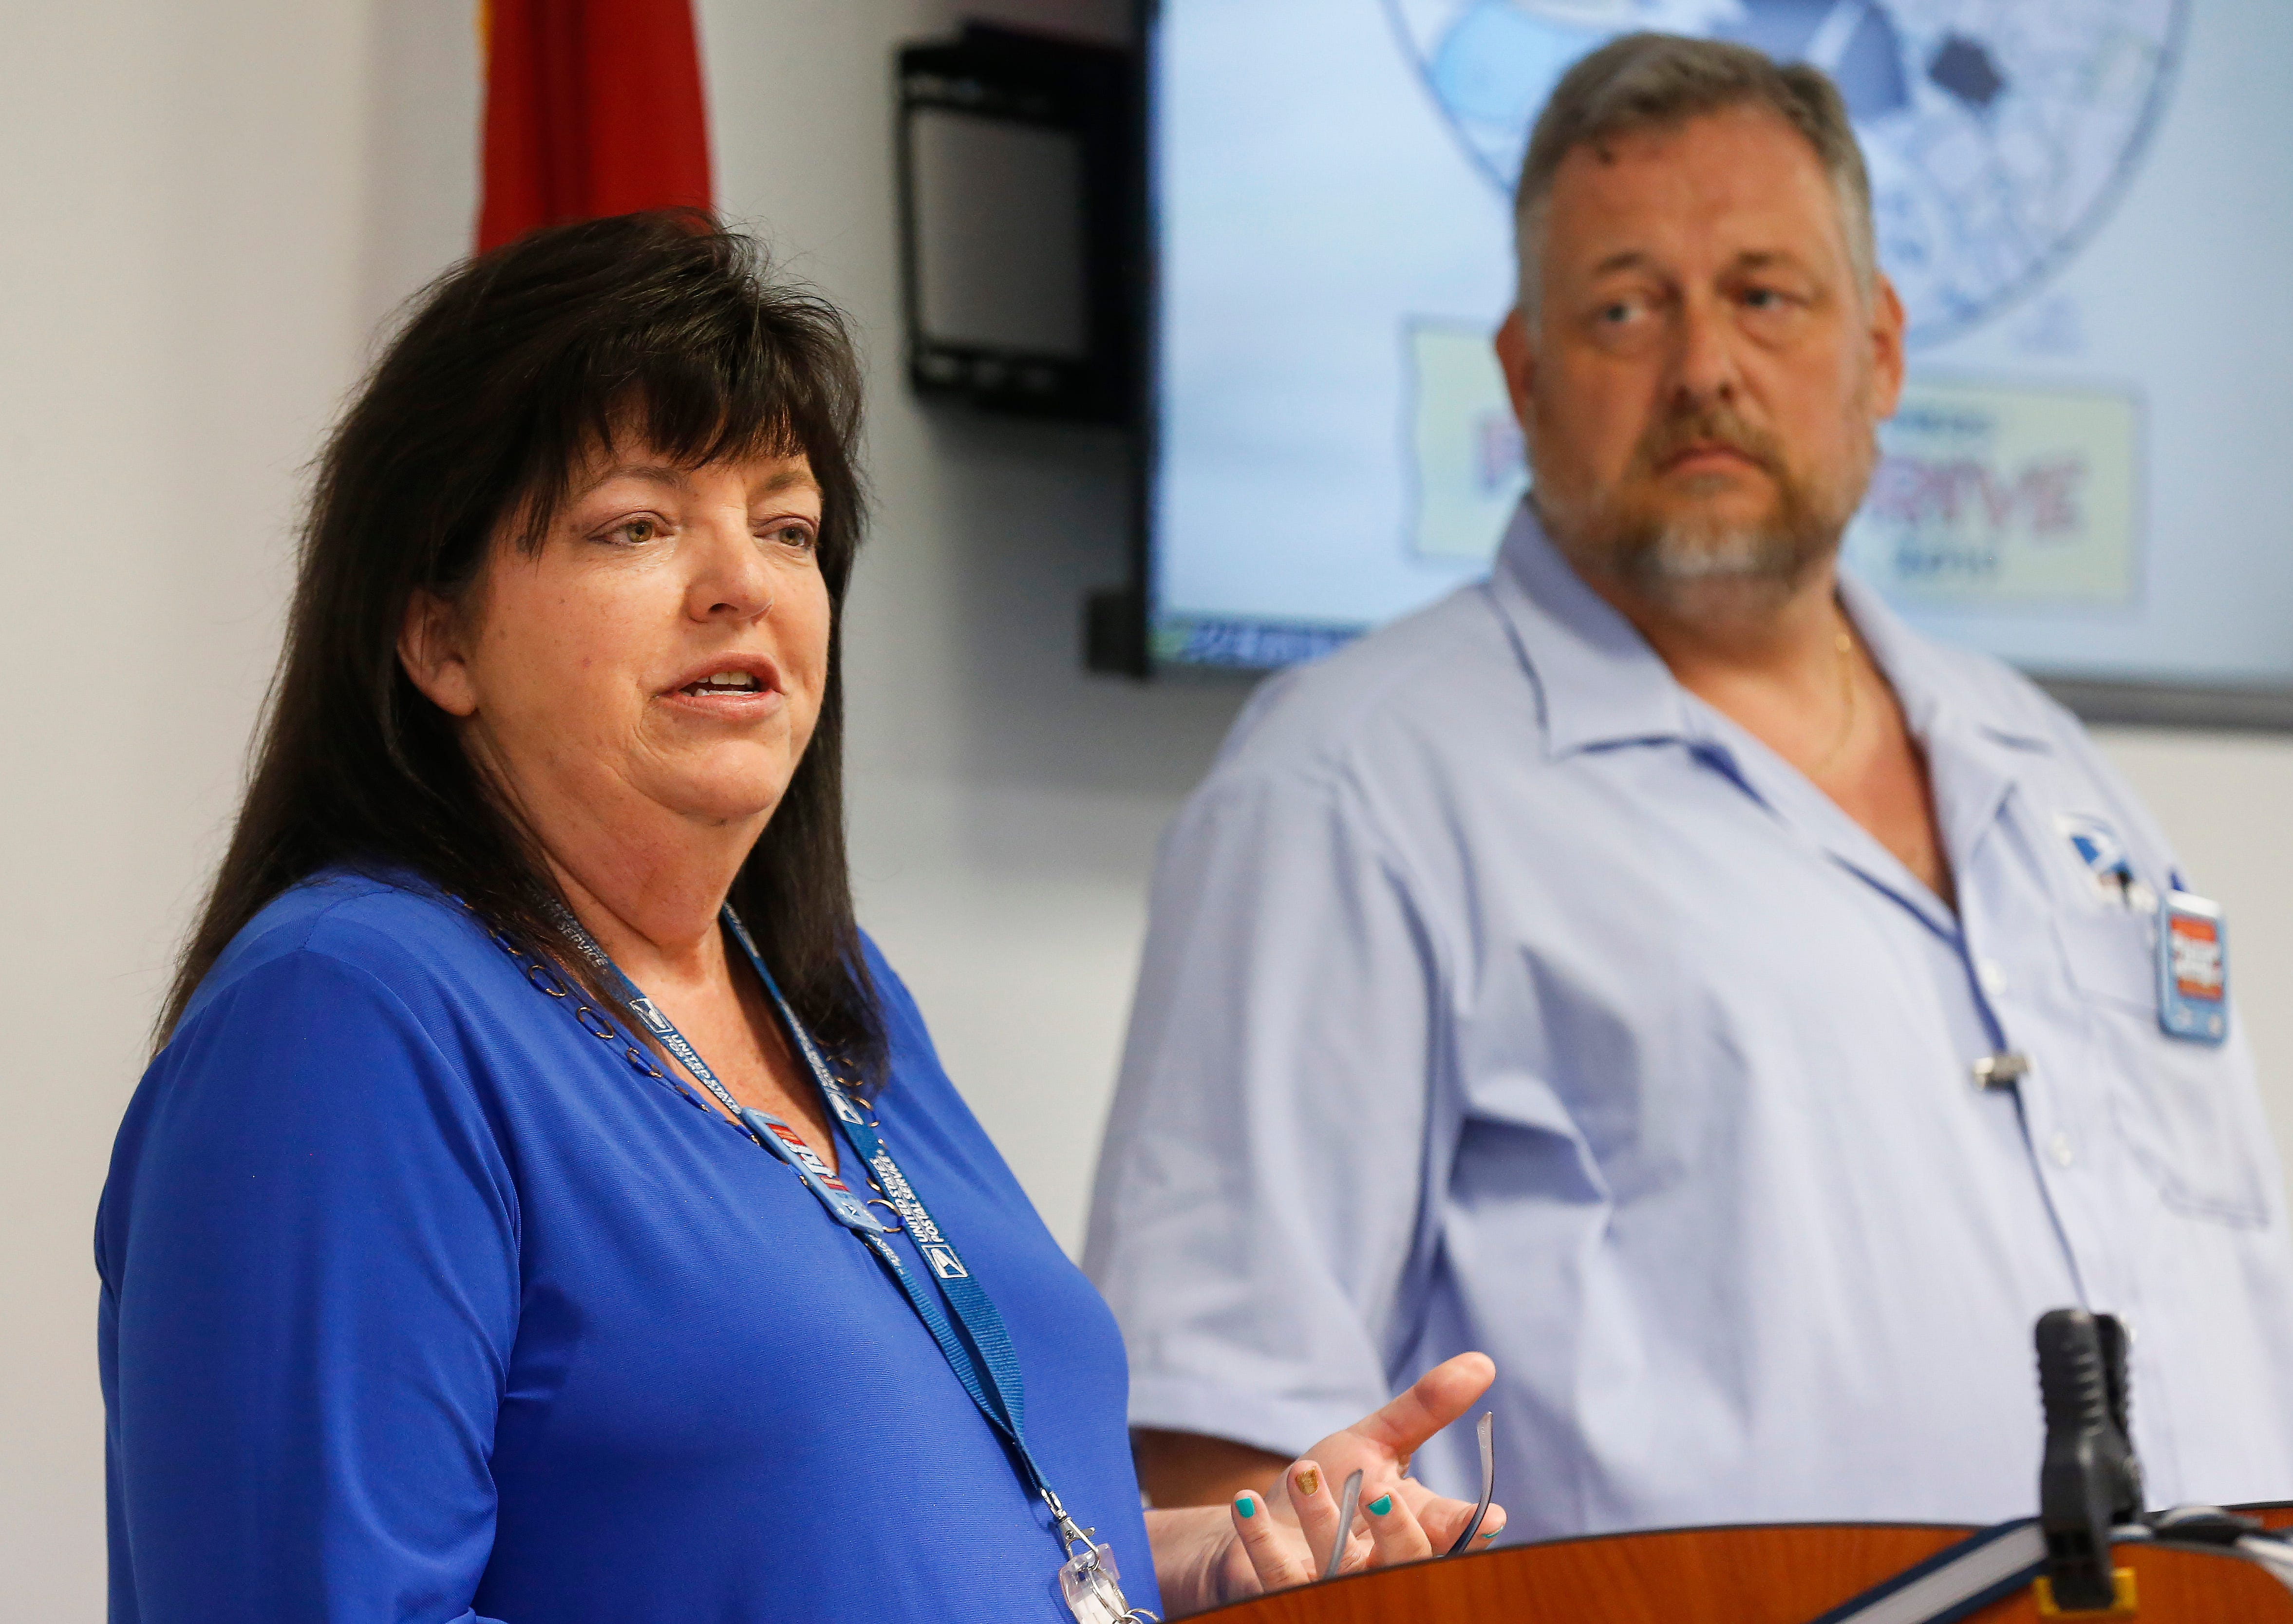 Terri Ryan, the postmaster of Springfield, speaks during a press conference for the Stamp Out Hunger Food Drive on Thursday, May 9, 2019.